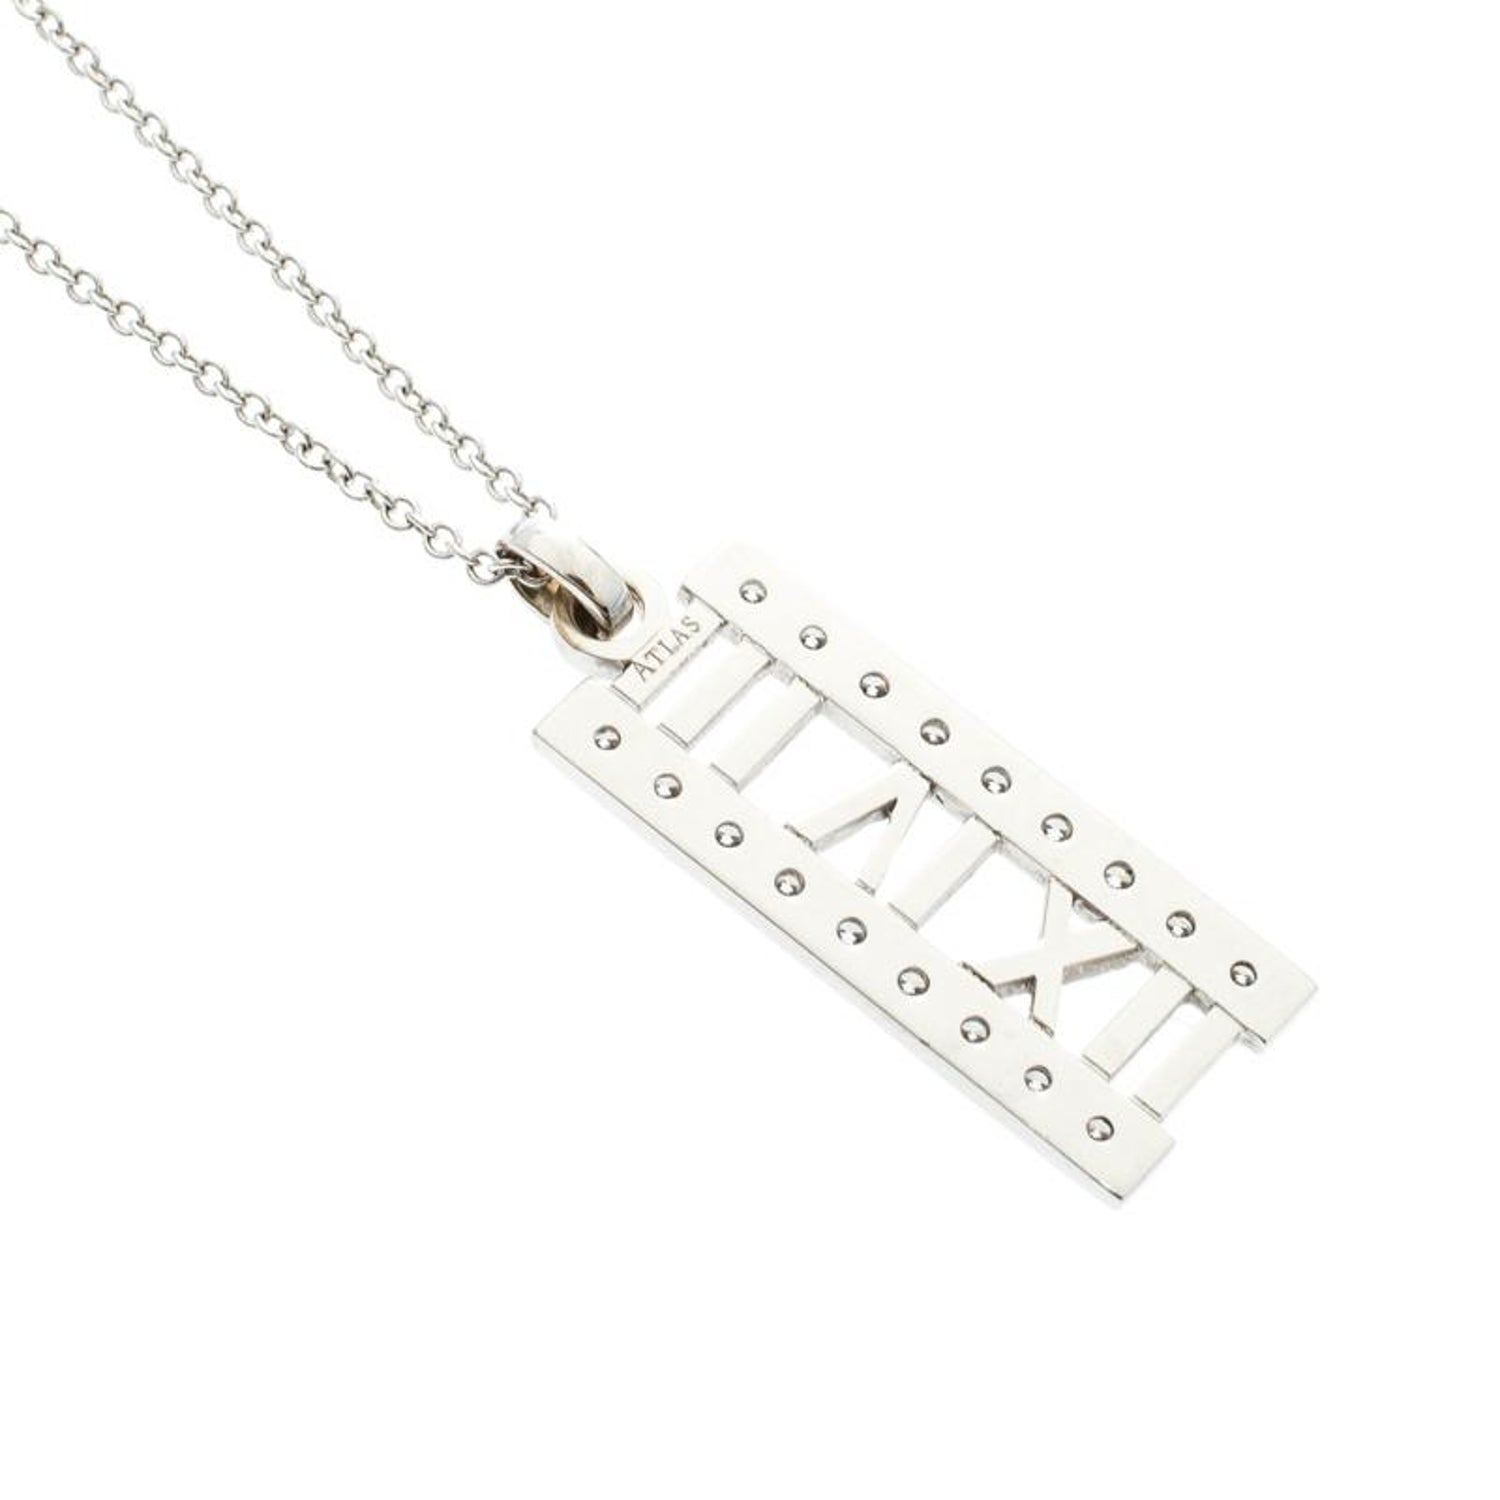 de62016b1 Tiffany and Co. Atlas Diamond 18k White Gold Open Bar Pendant Necklace For  Sale at 1stdibs